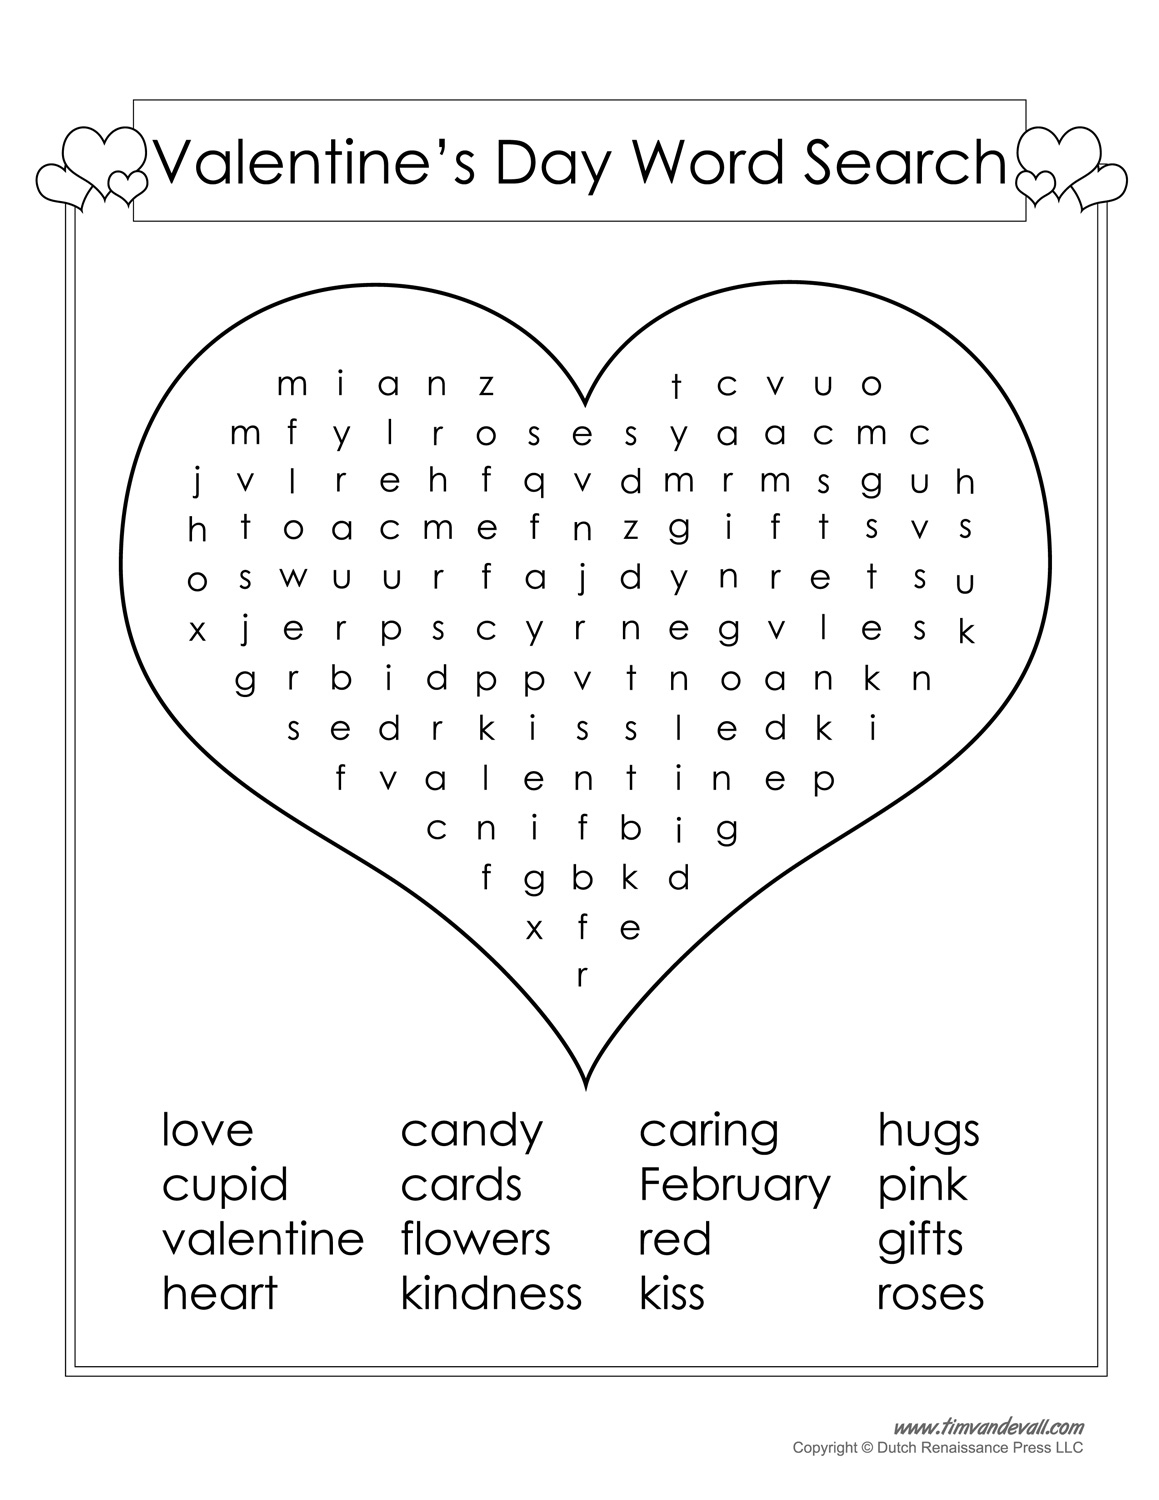 12 Valentine's Day Word Search | Kittybabylove - Printable Puzzle Of The Day